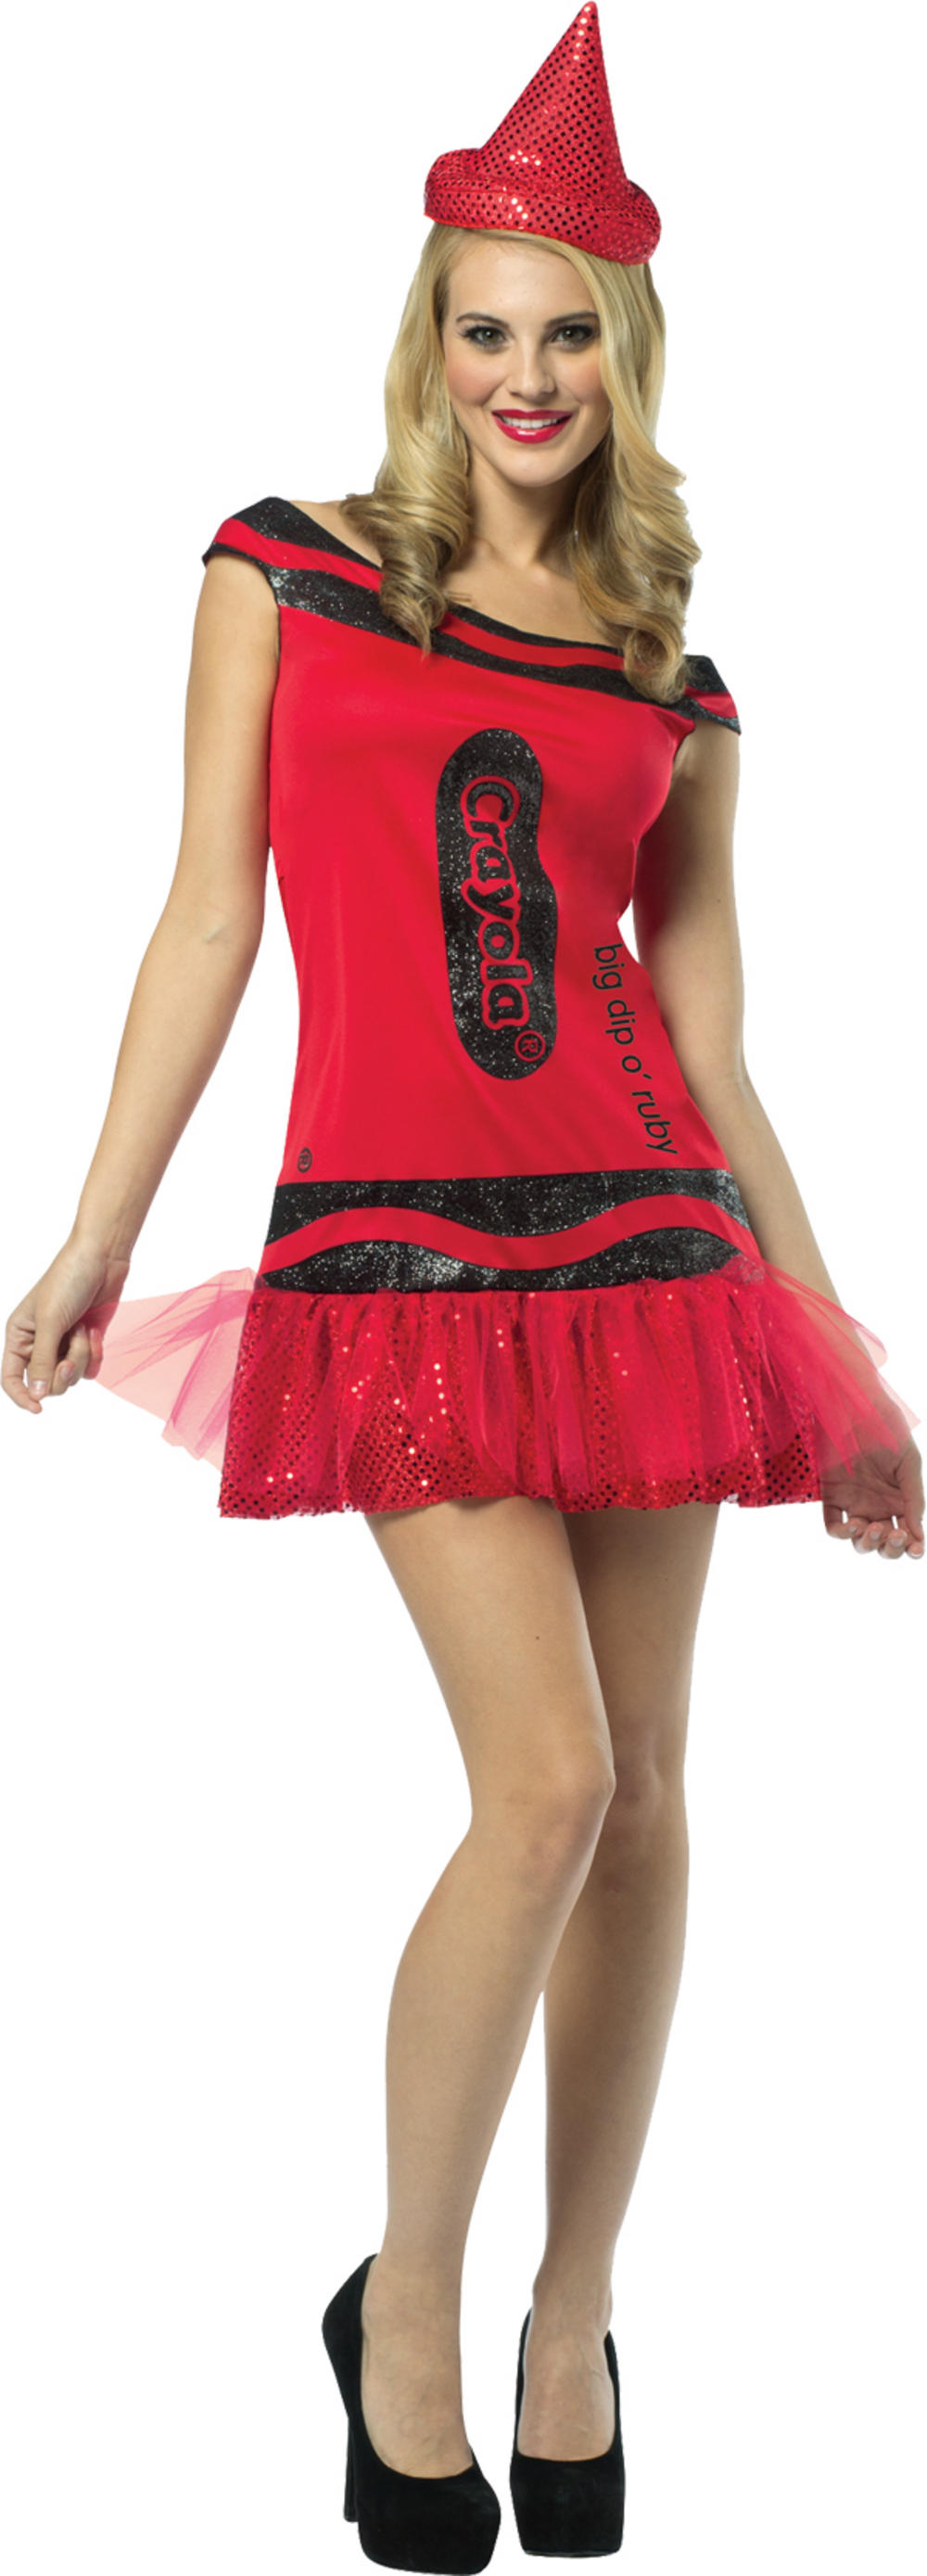 Ruby Red Crayola Glitter Dress Ladies Costume